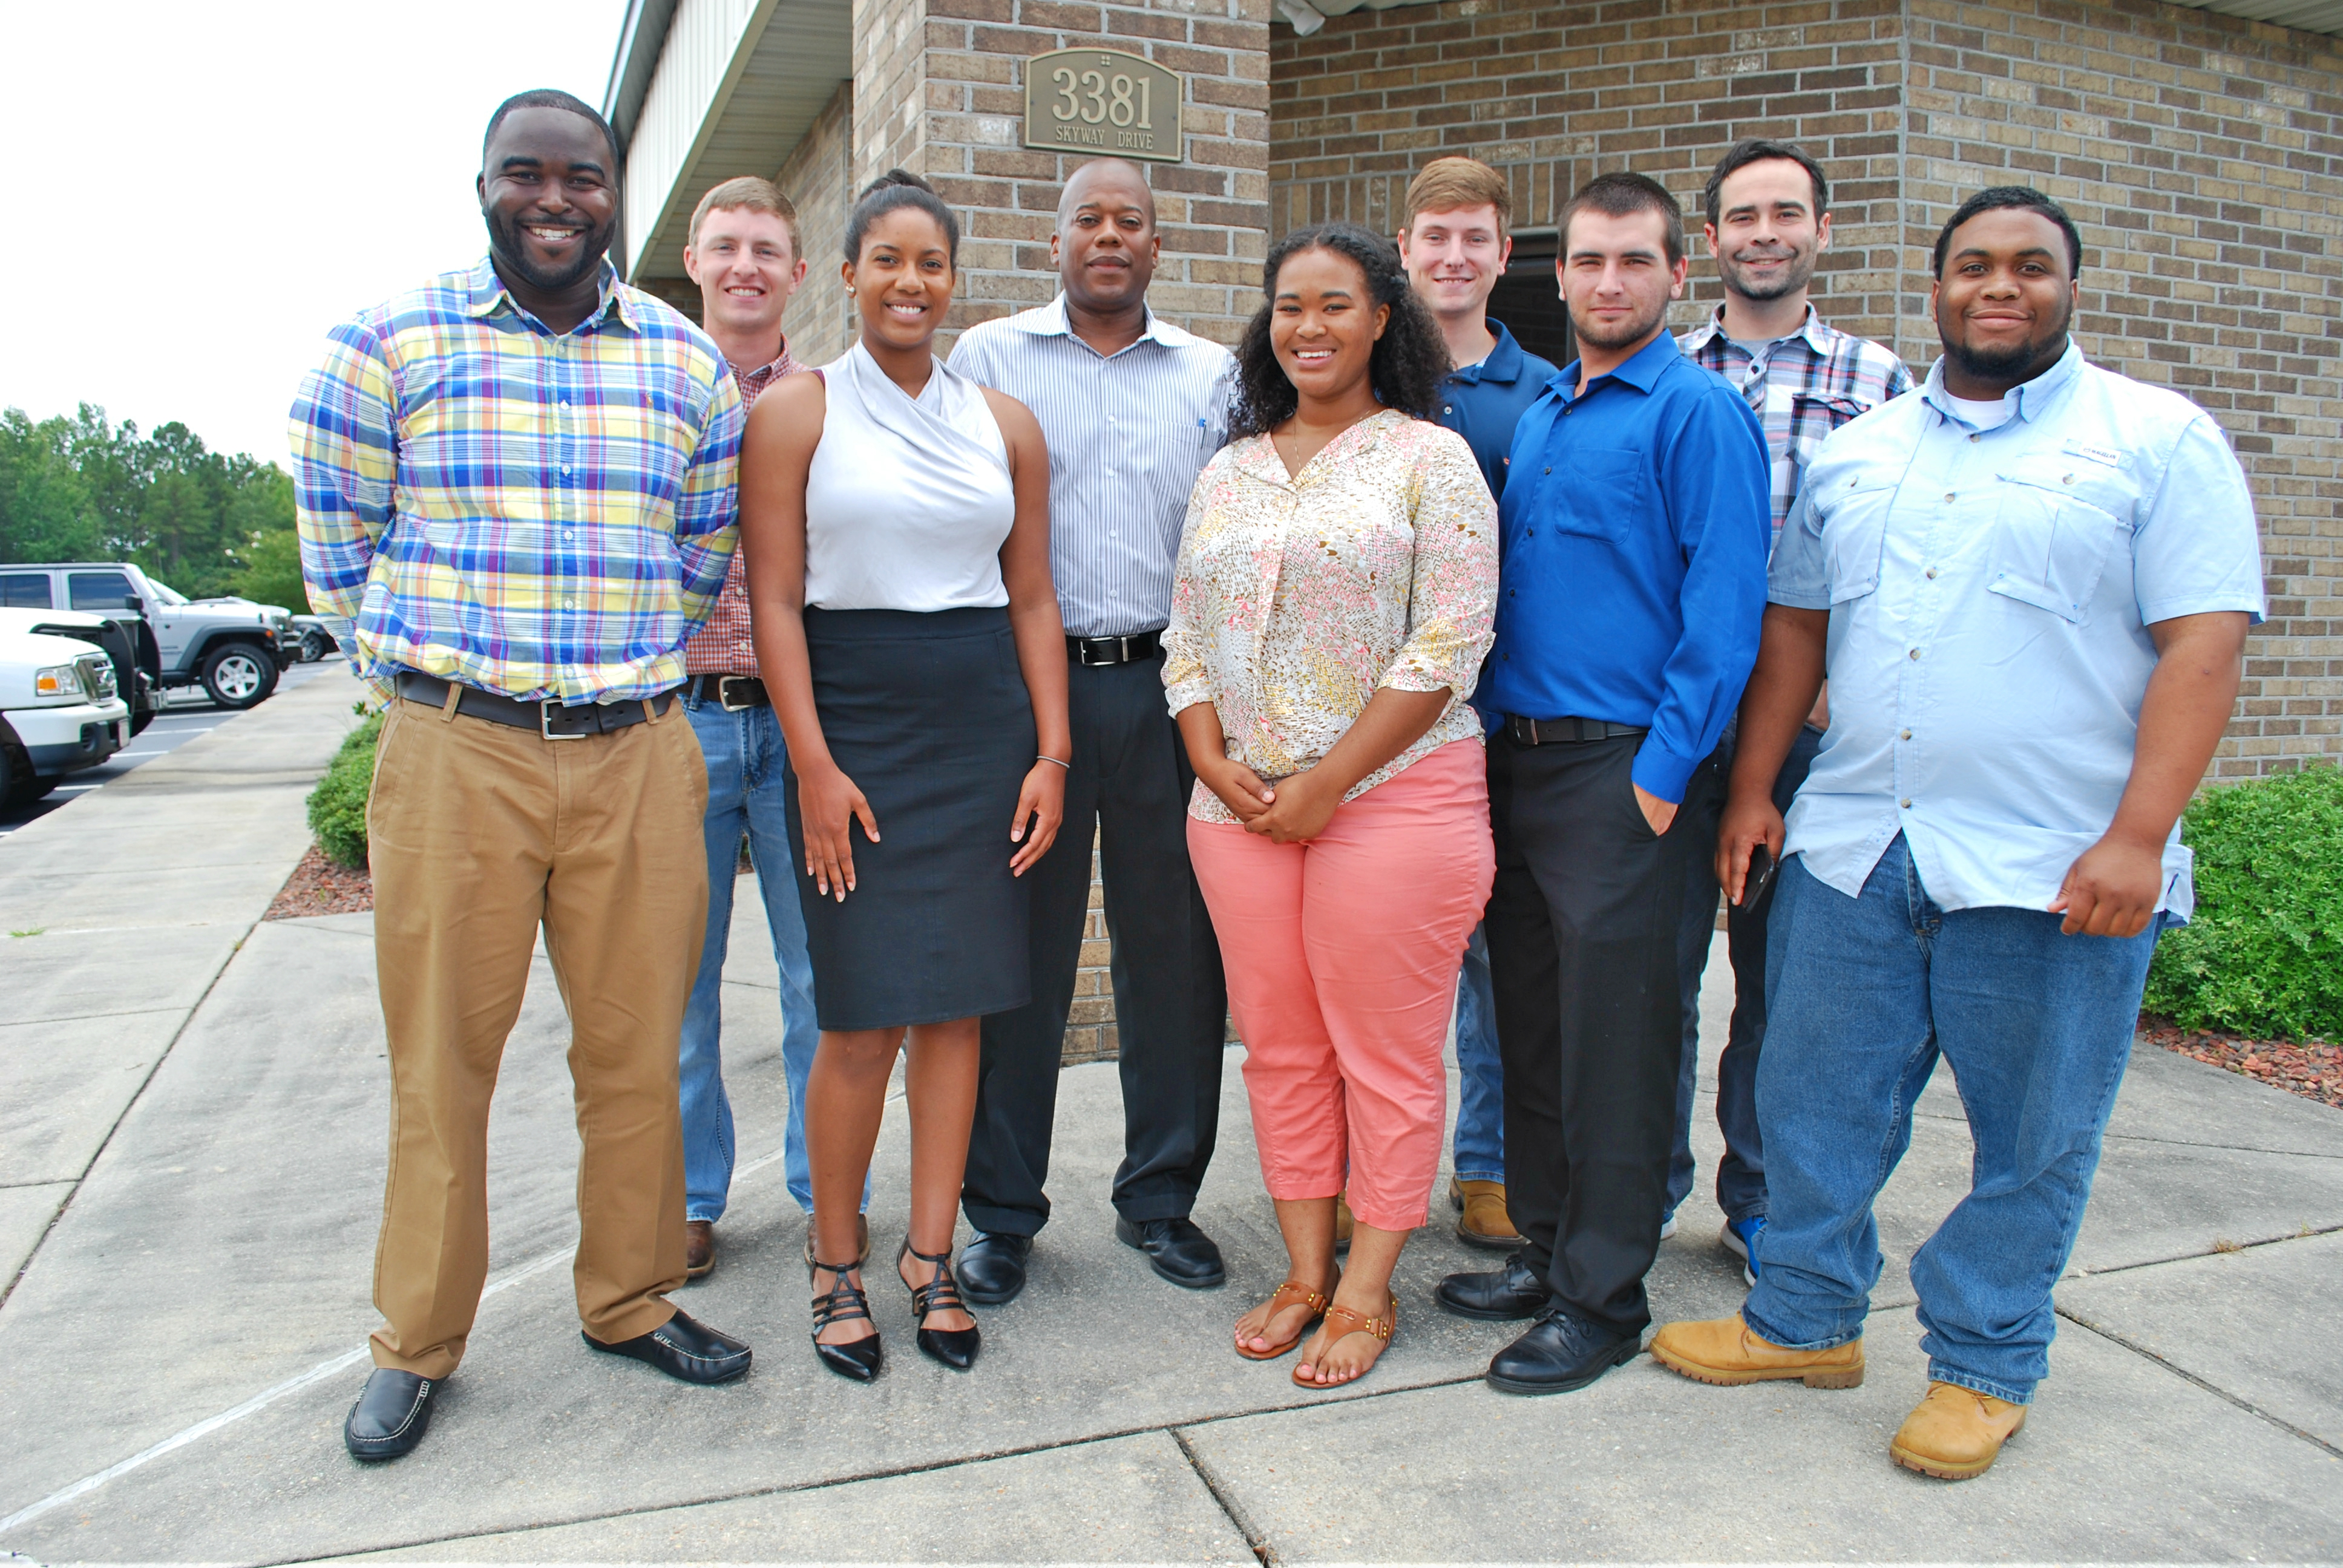 State Conservationist Ben Malone (center) takes a photo with this year's student interns. Pictured left to right: Cedric Williams, Daniel Williams, Jacqueline Martin, Ben Malone, Randi Butler, Corey Espey(TSP), Jaylan Hancock, Trey 'Ray' Reich and James Penn.